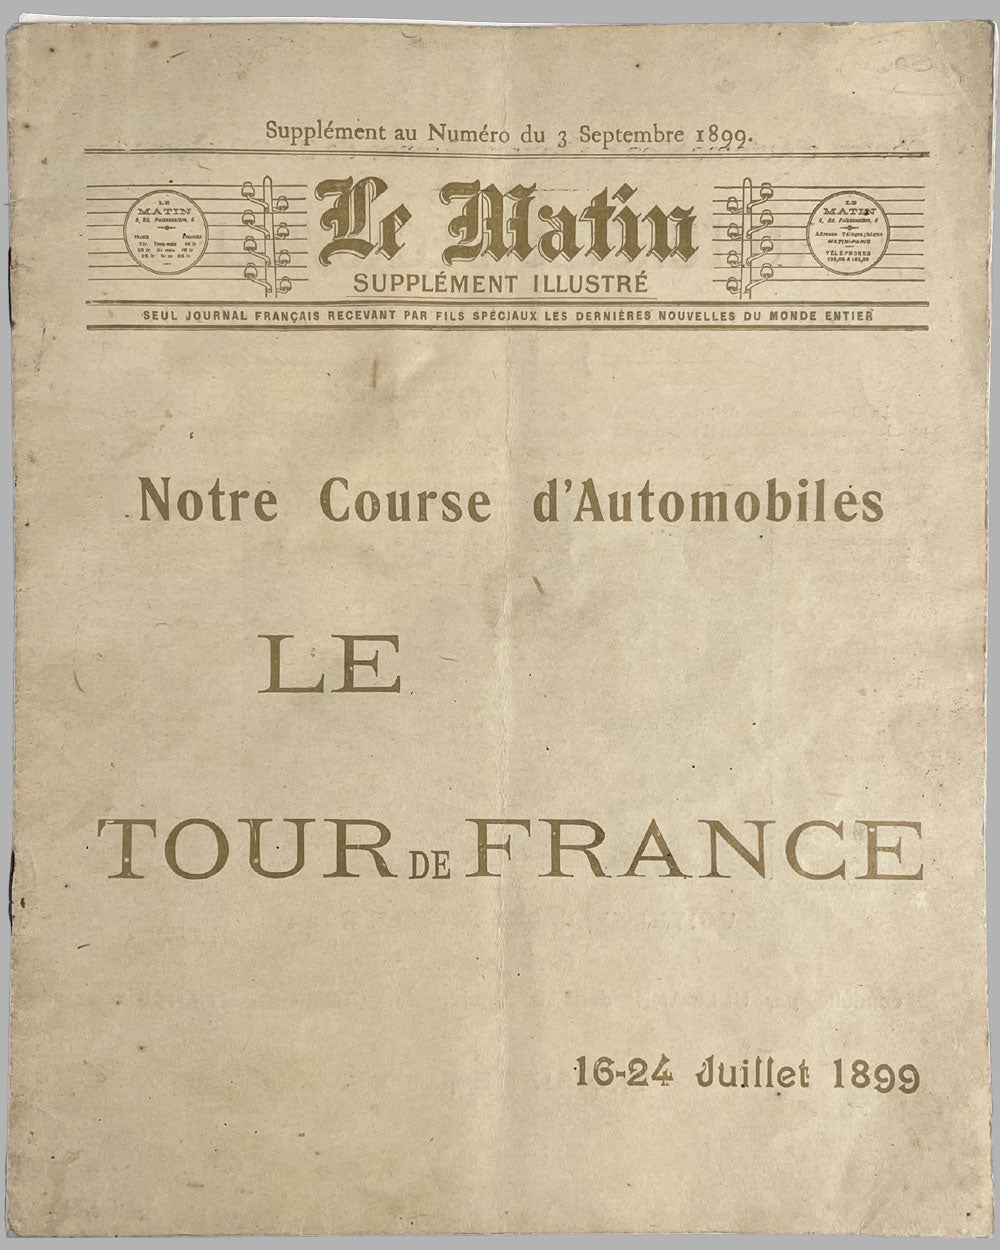 1st Tour de France automobile 1899 supplement (September 1899) 3